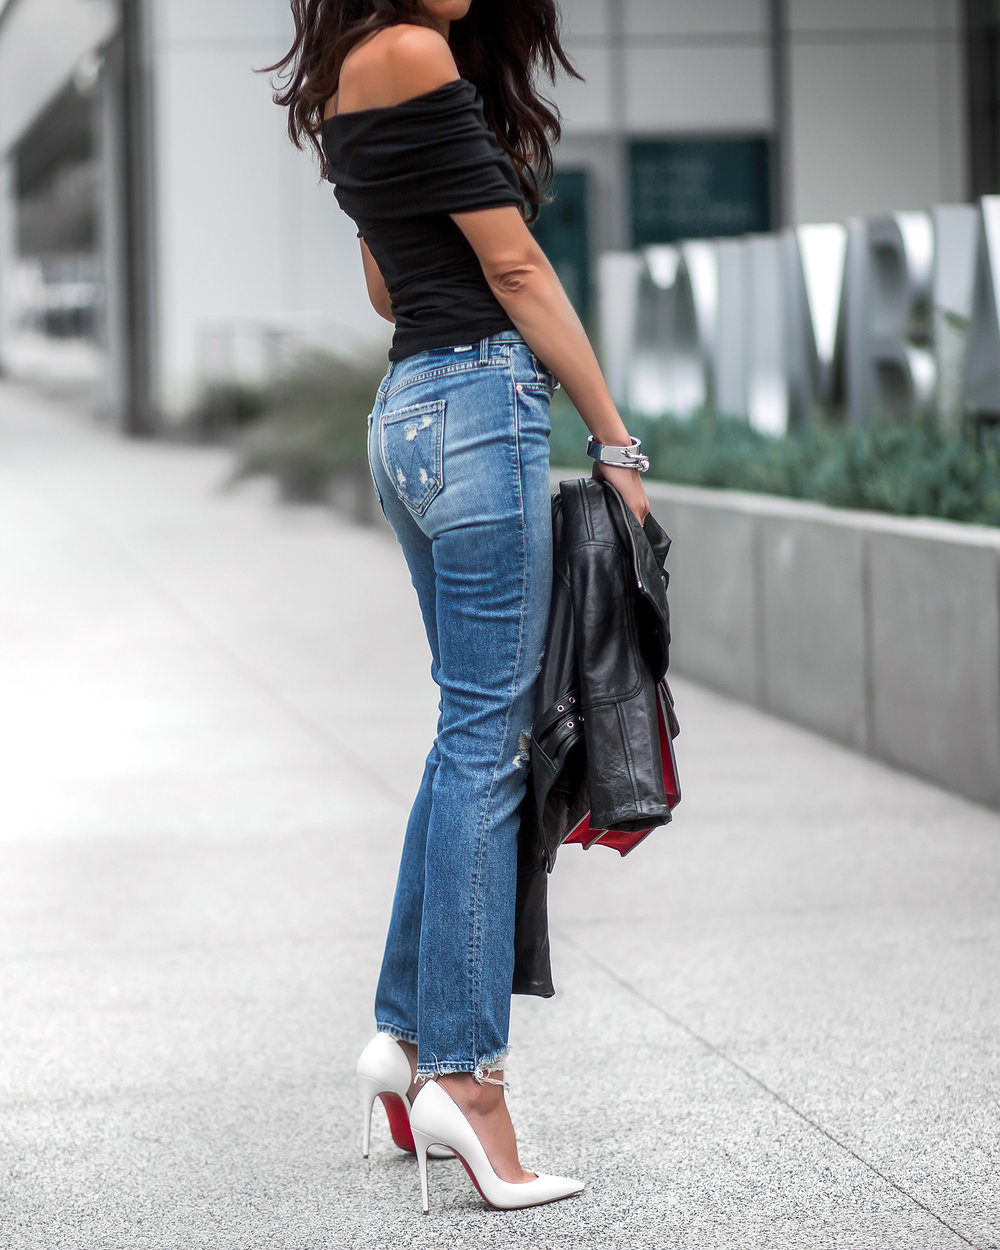 Off_the_Shoulder_Top_Mother_Denim_Ripped_Jeans_Gucci_Dionysus_Bag_White_Christian_Louboutin_Pumps.jpg